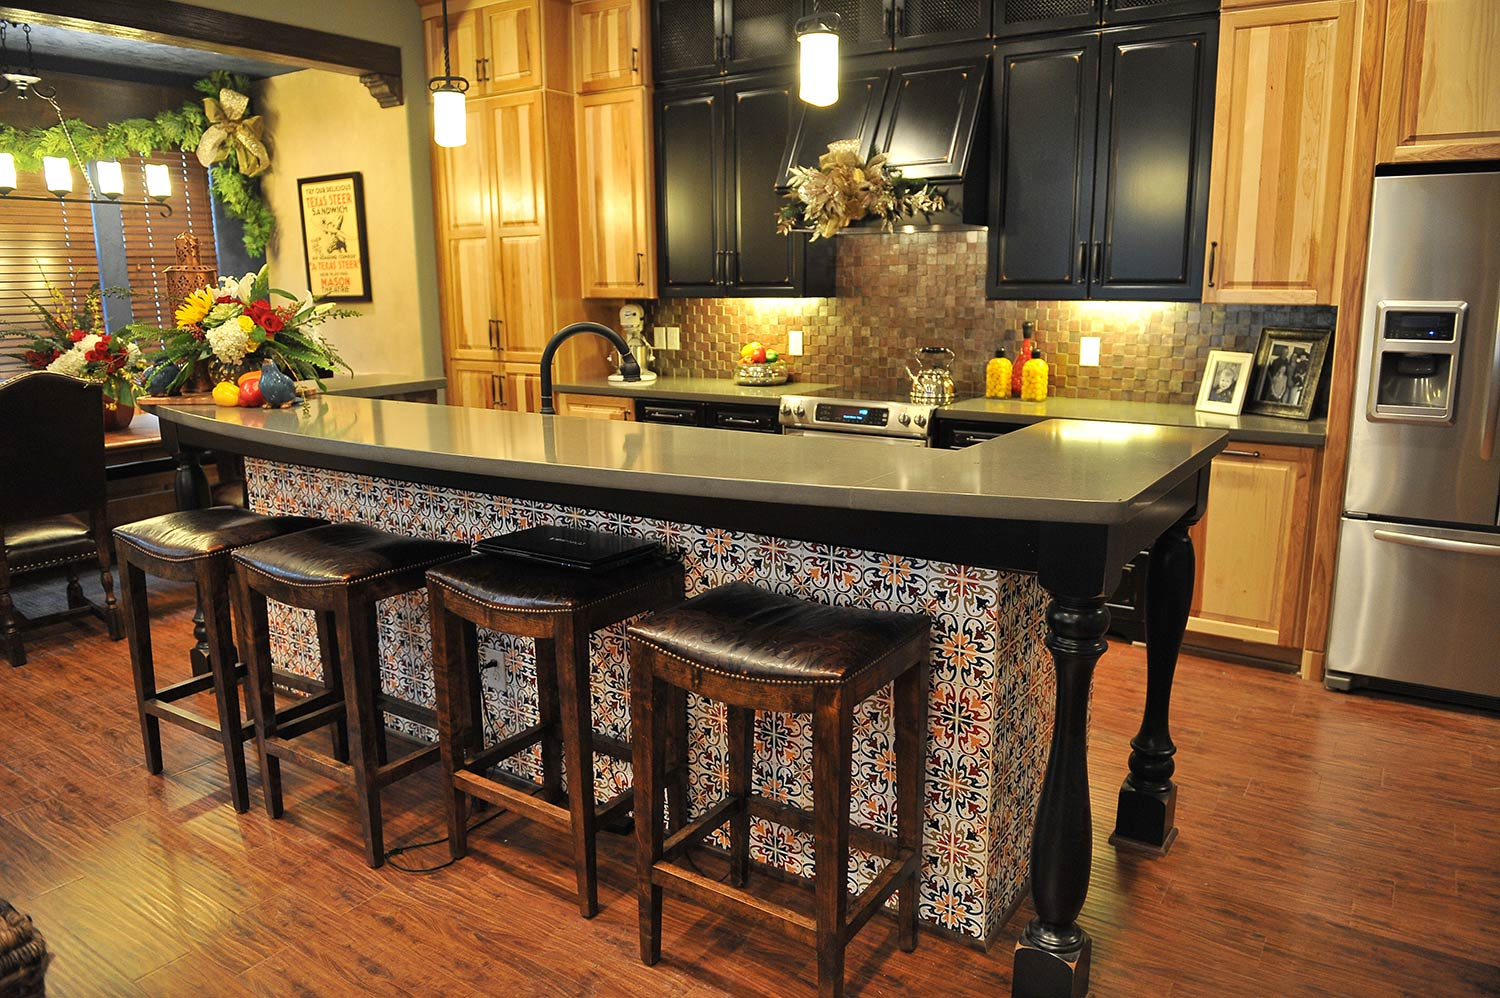 Extreme makeover home edition images in tile usa for Extreme home makeover designers